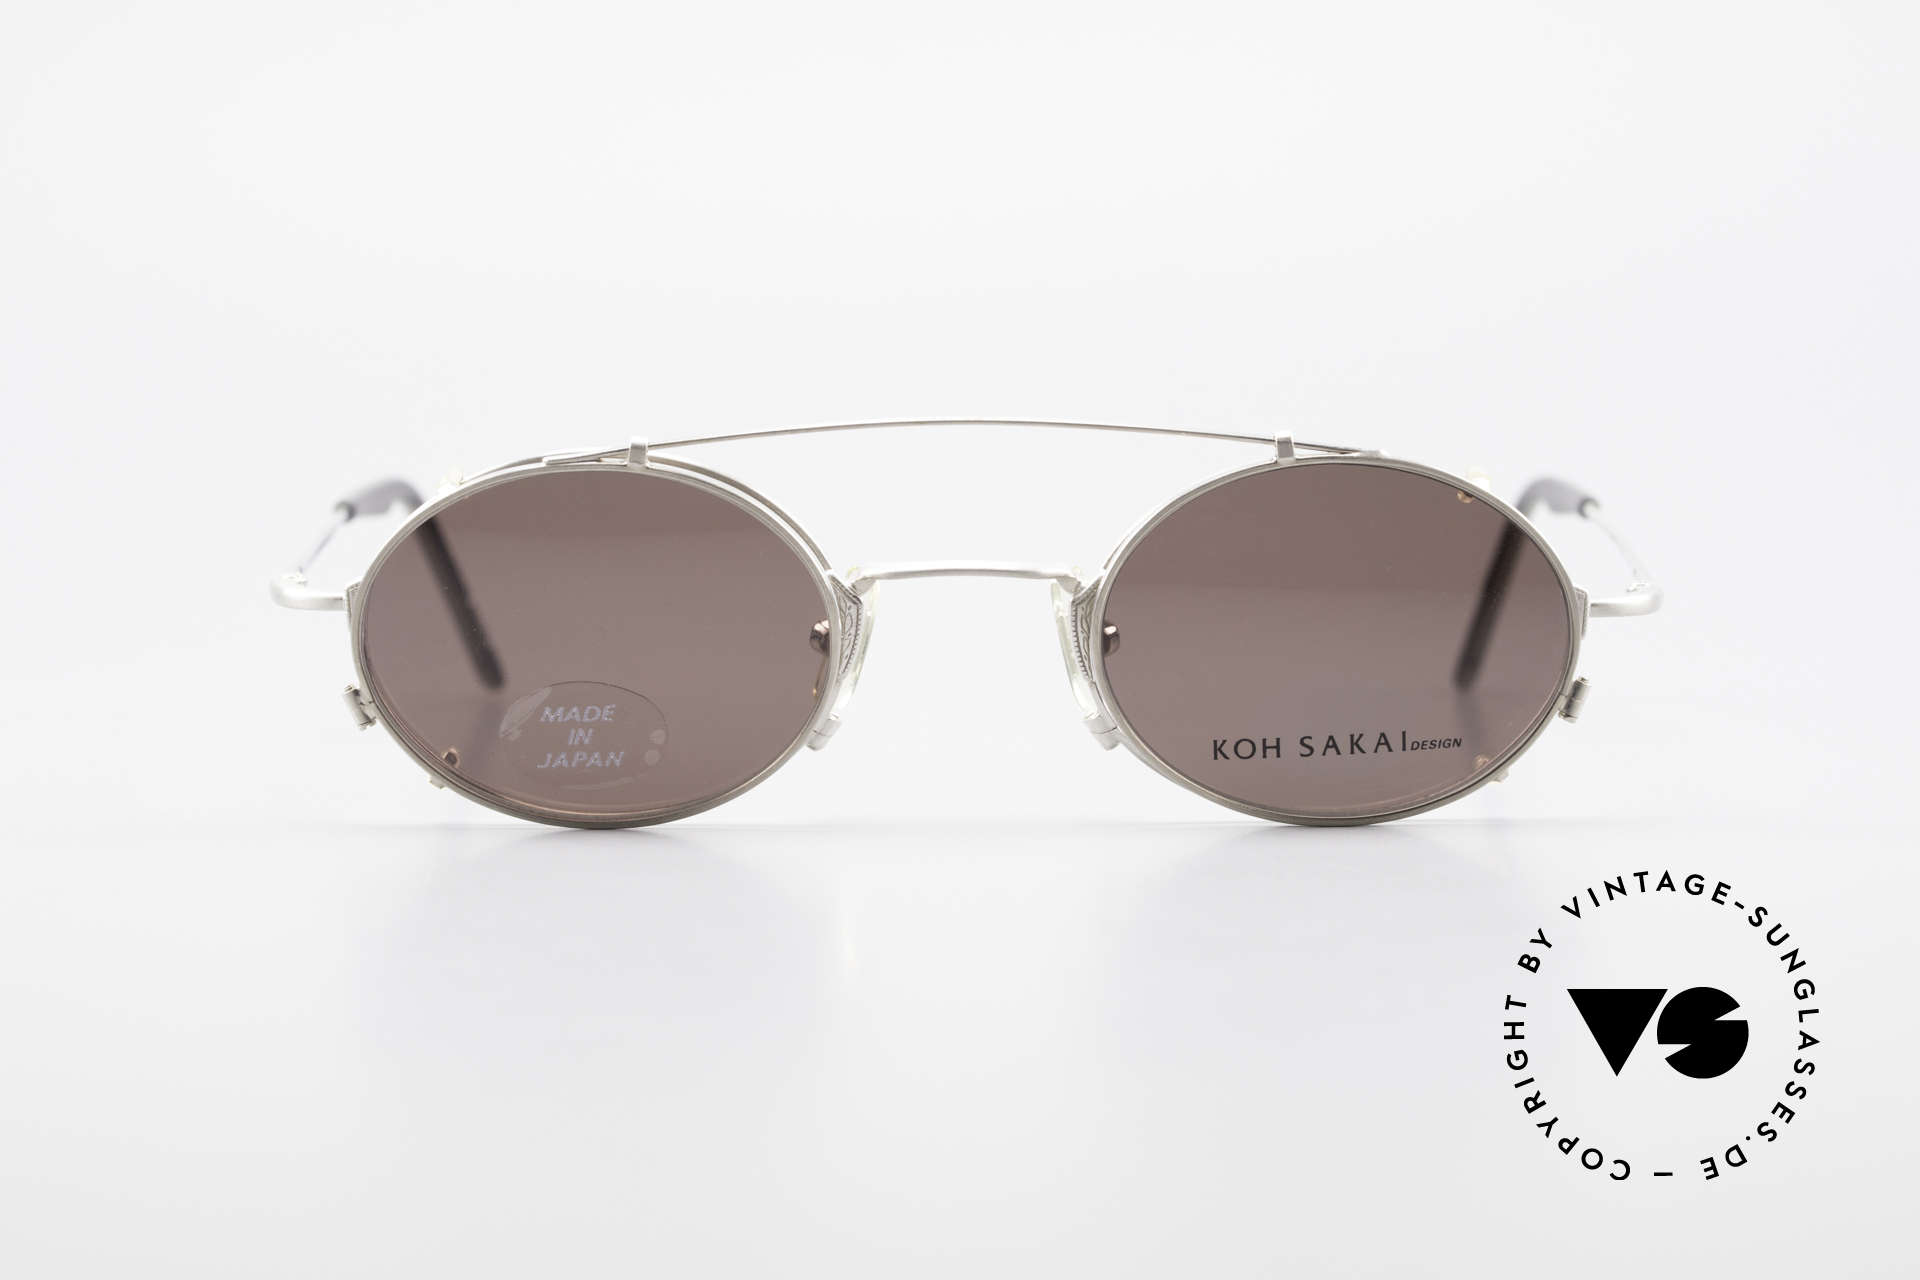 Koh Sakai KS9711 Small Oval Glasses Clip On, Koh Sakai, BADA and OKIO have been one distribution, Made for Men and Women